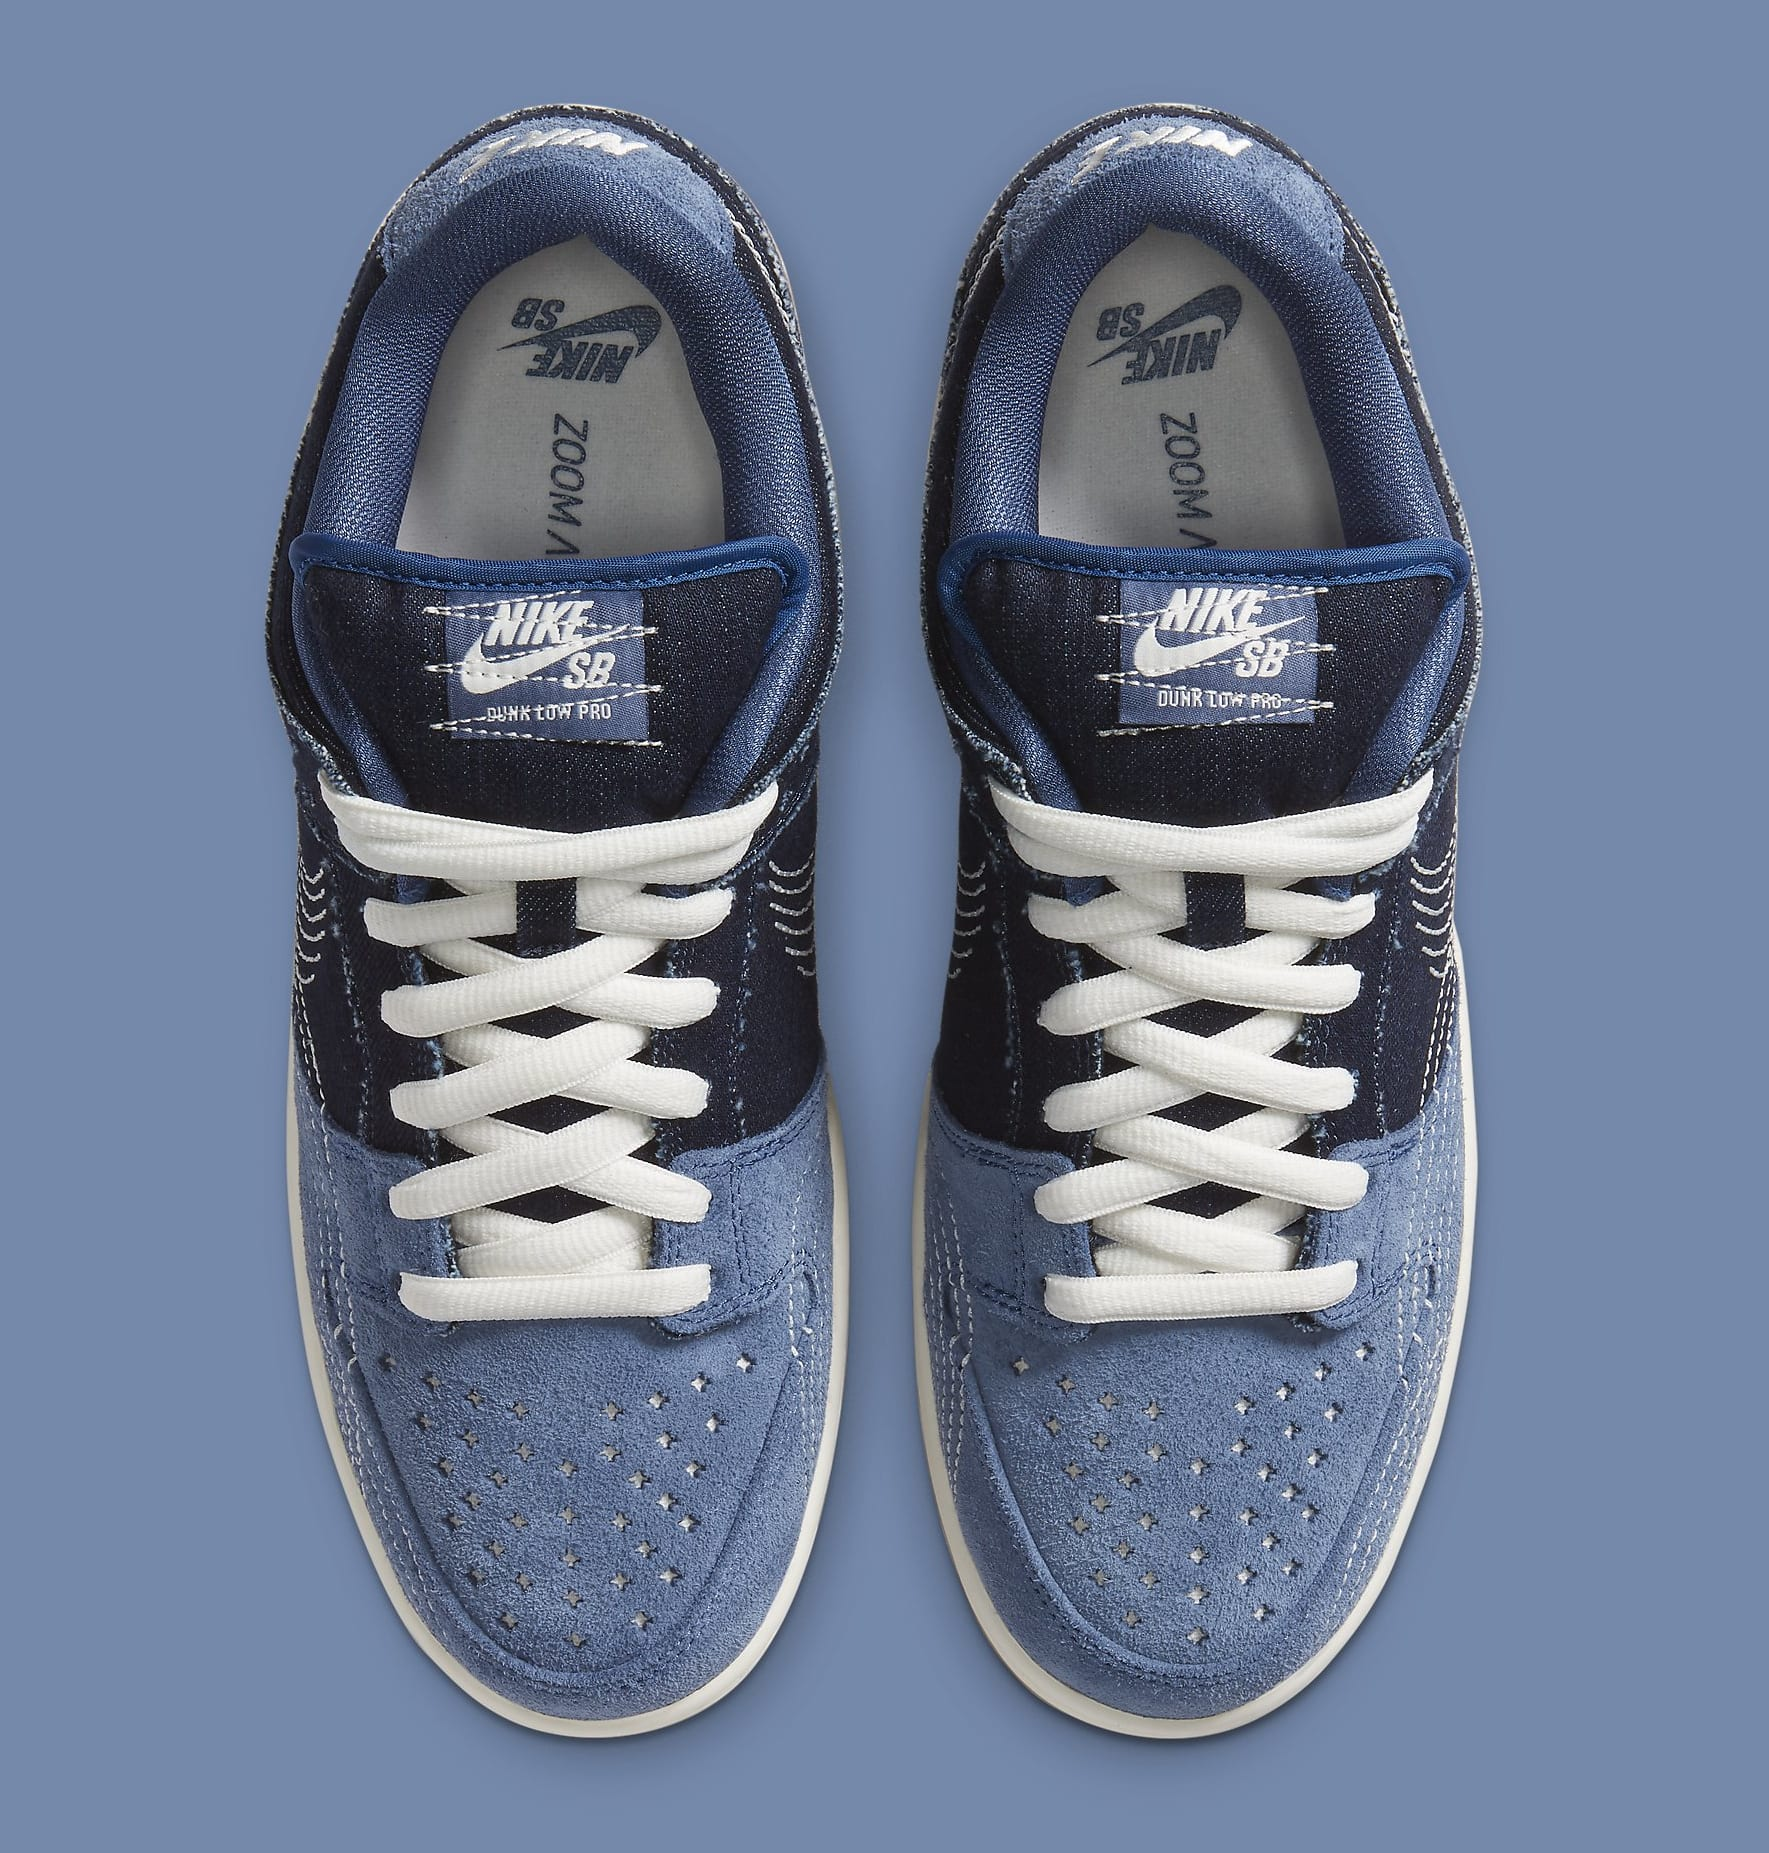 Nike SB Dunk Low 'Sashiko' CV0316-400 Top